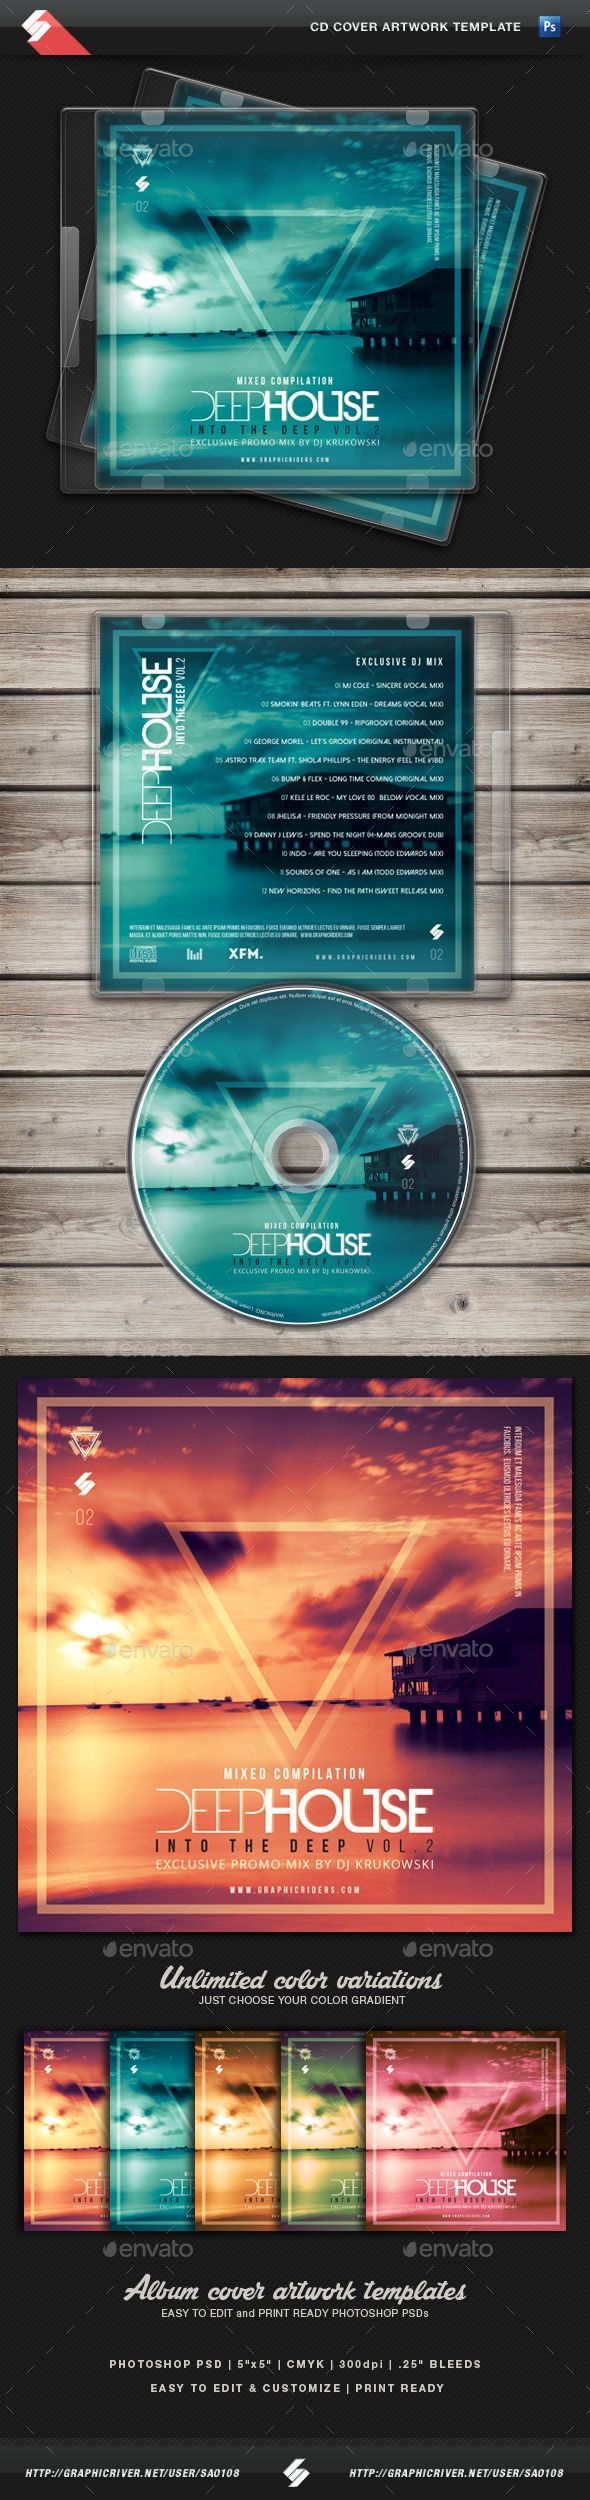 Deep House Mix 2 - CD Cover Artwork Template